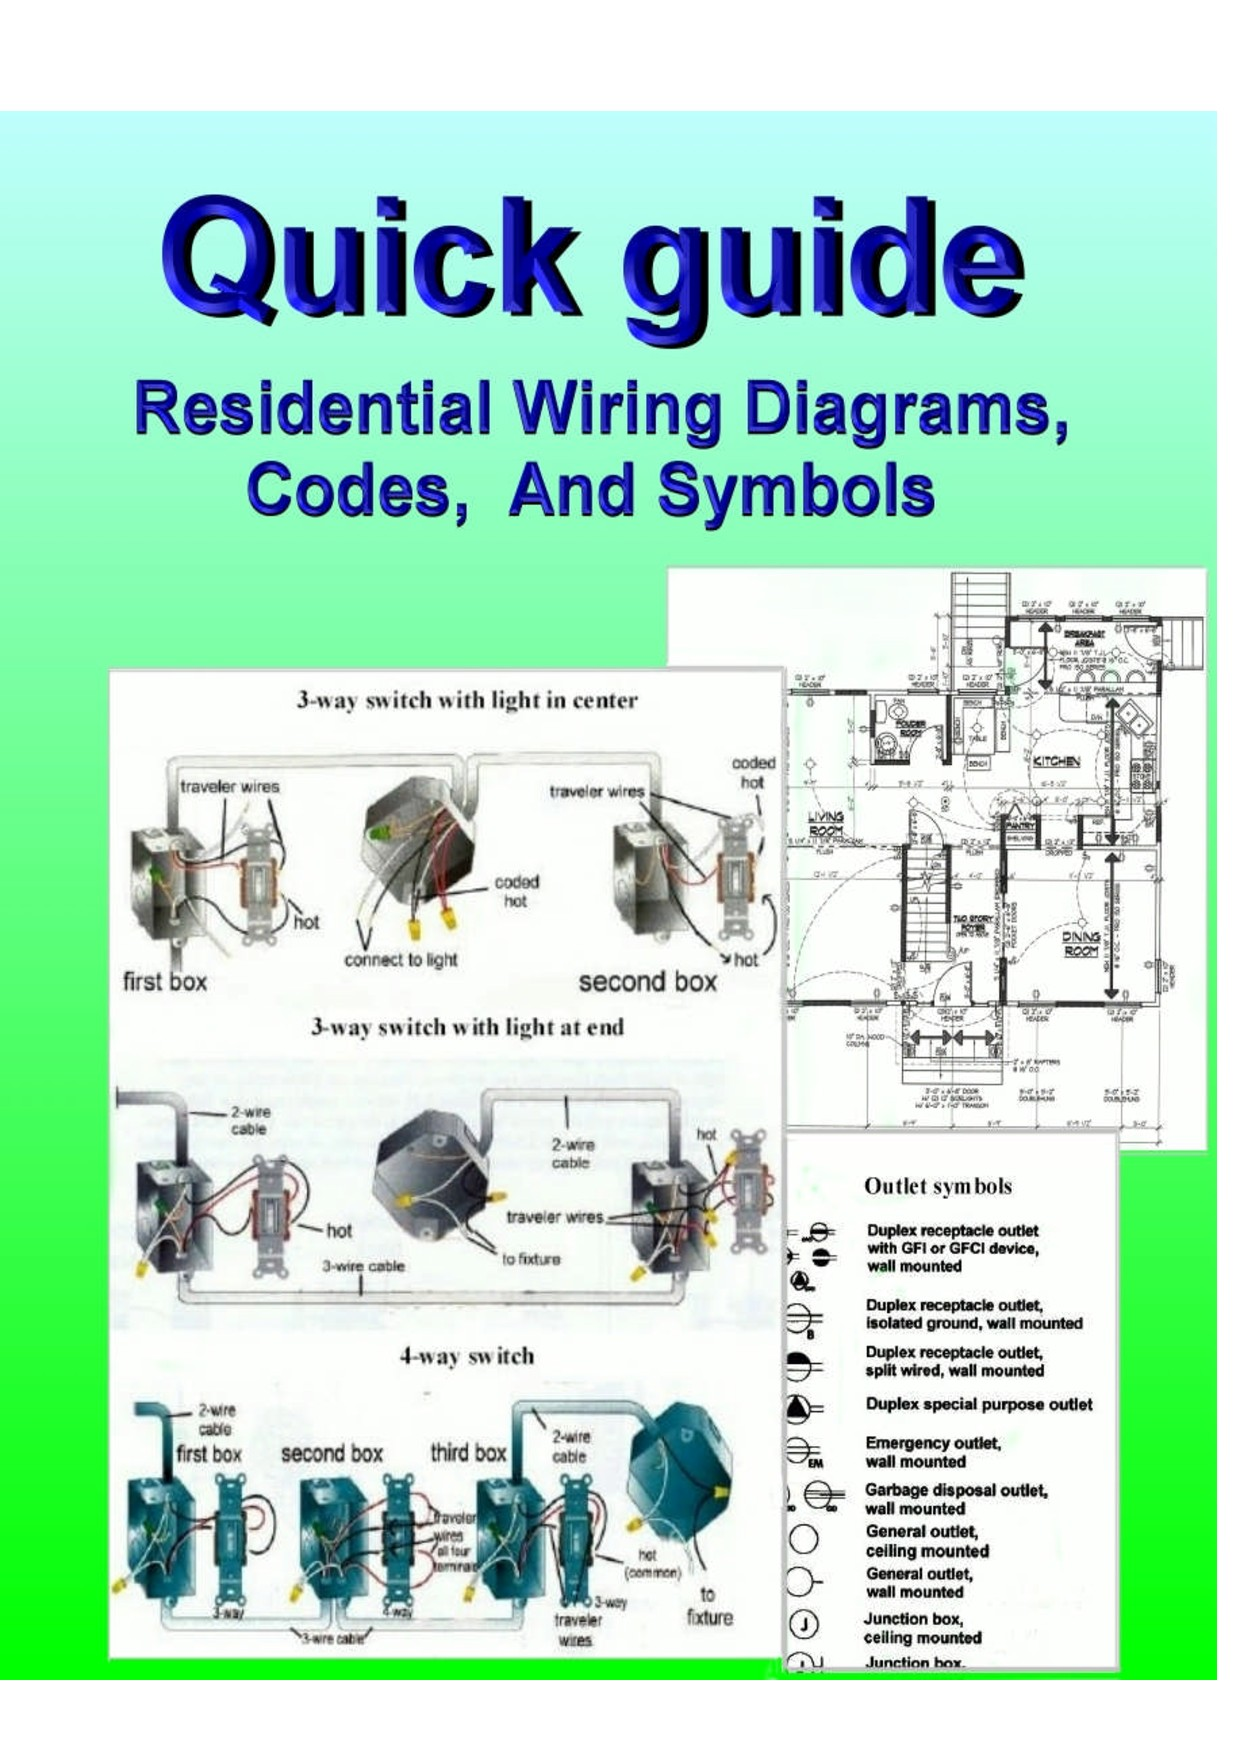 Lighting Contactor Wiring Diagram Photocell Lighting Contactor Wiring Diagram Pdf Of Lighting Contactor Wiring Diagram Photocell